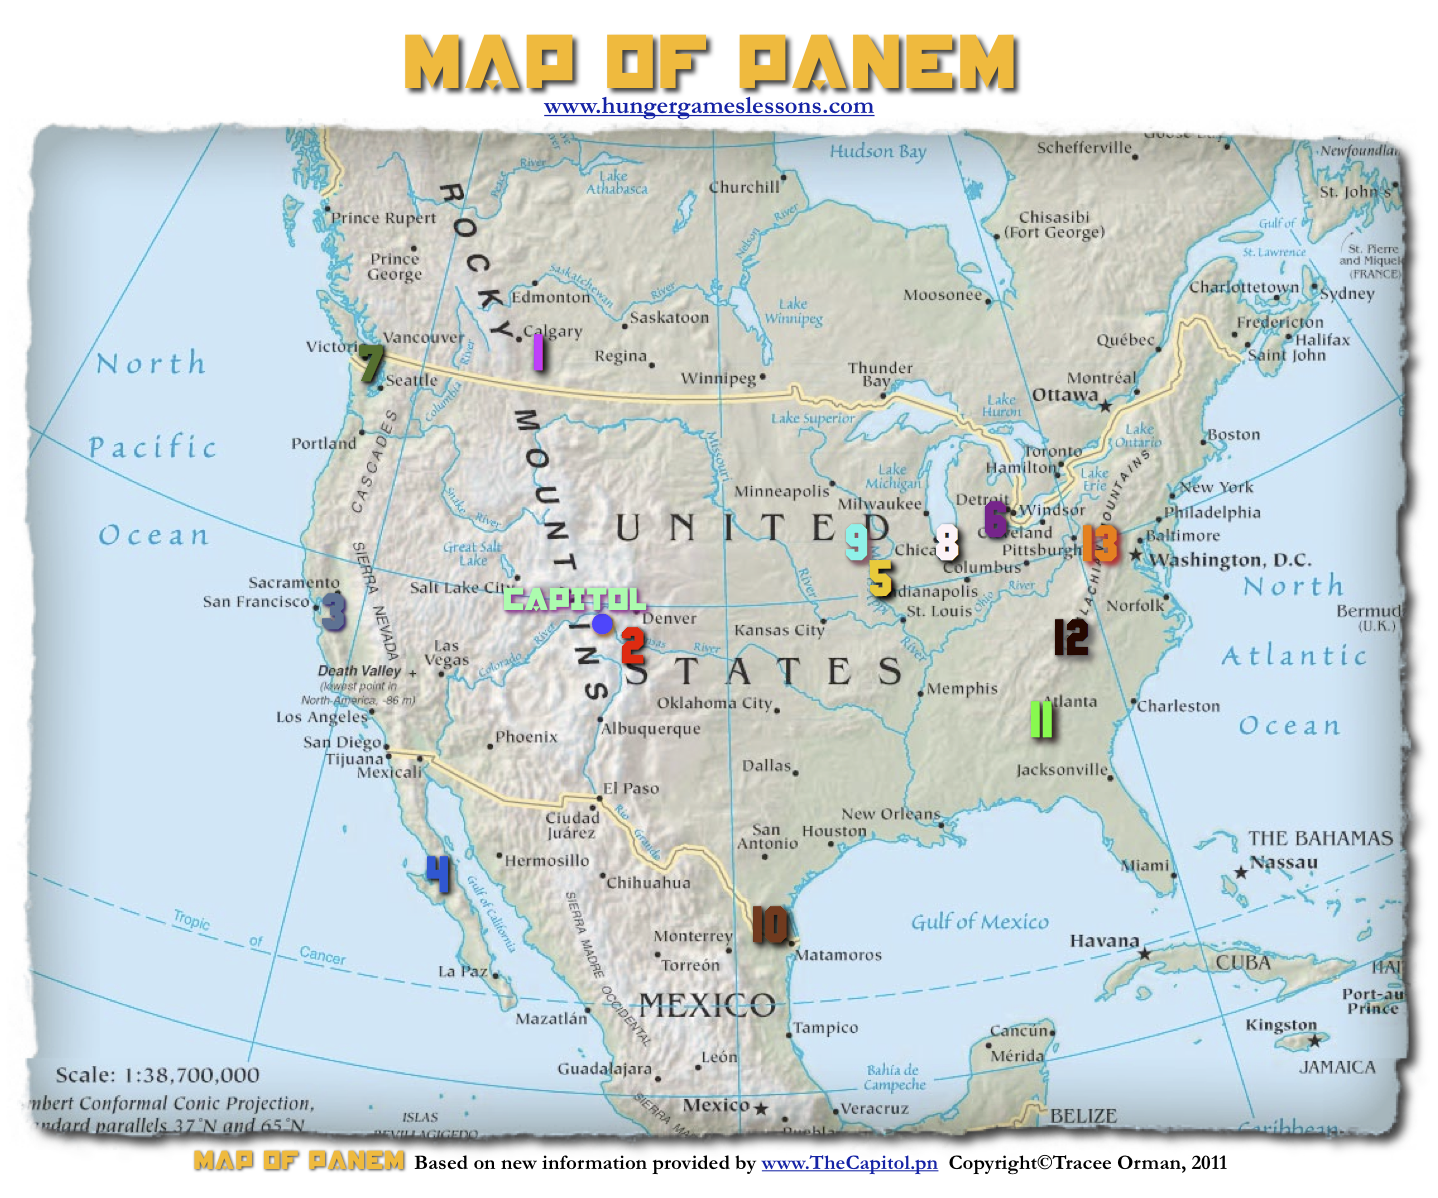 Hunger Games Lessons My Updated Map Of Panem The Hunger Games Trilogy - Hunger-games-us-map